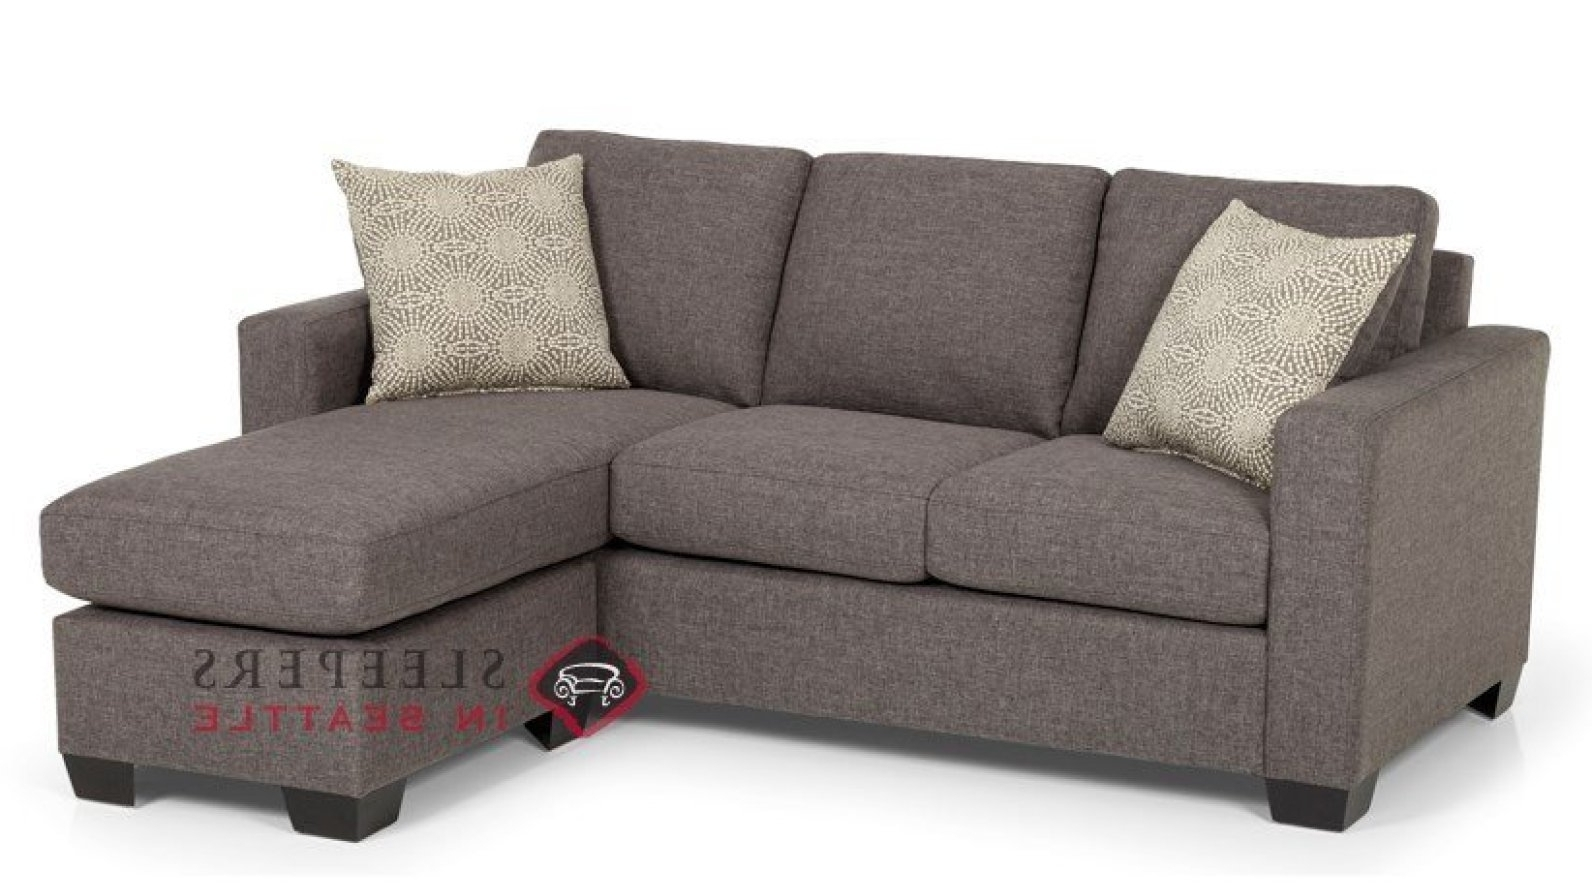 Sectional Sofas At Craigslist Within Most Up To Date Stylish Sectional Sofas On Craigslist – Mediasupload (View 14 of 20)